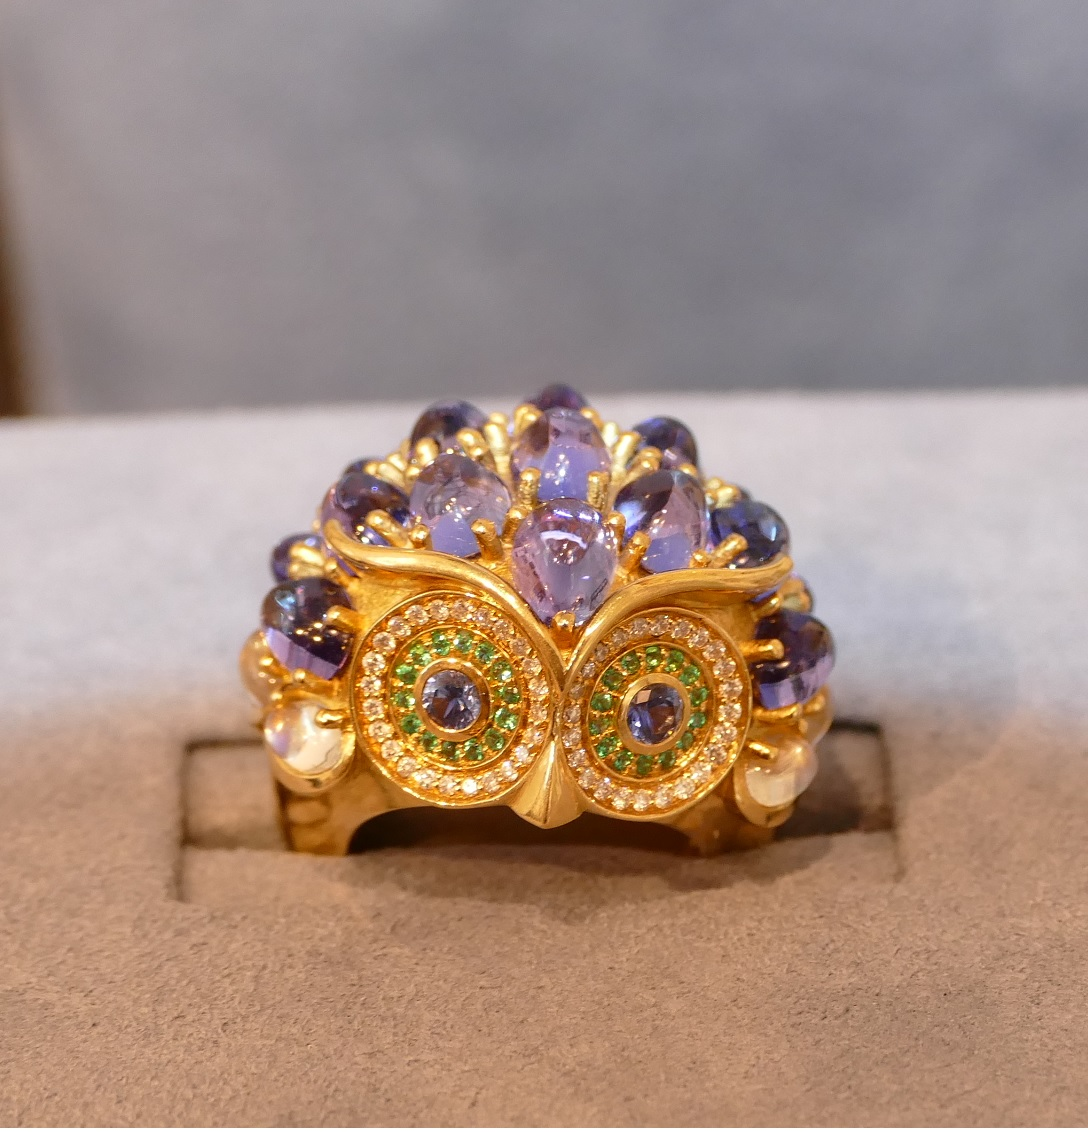 TEMPLE ST. CLAIR: OWL RING